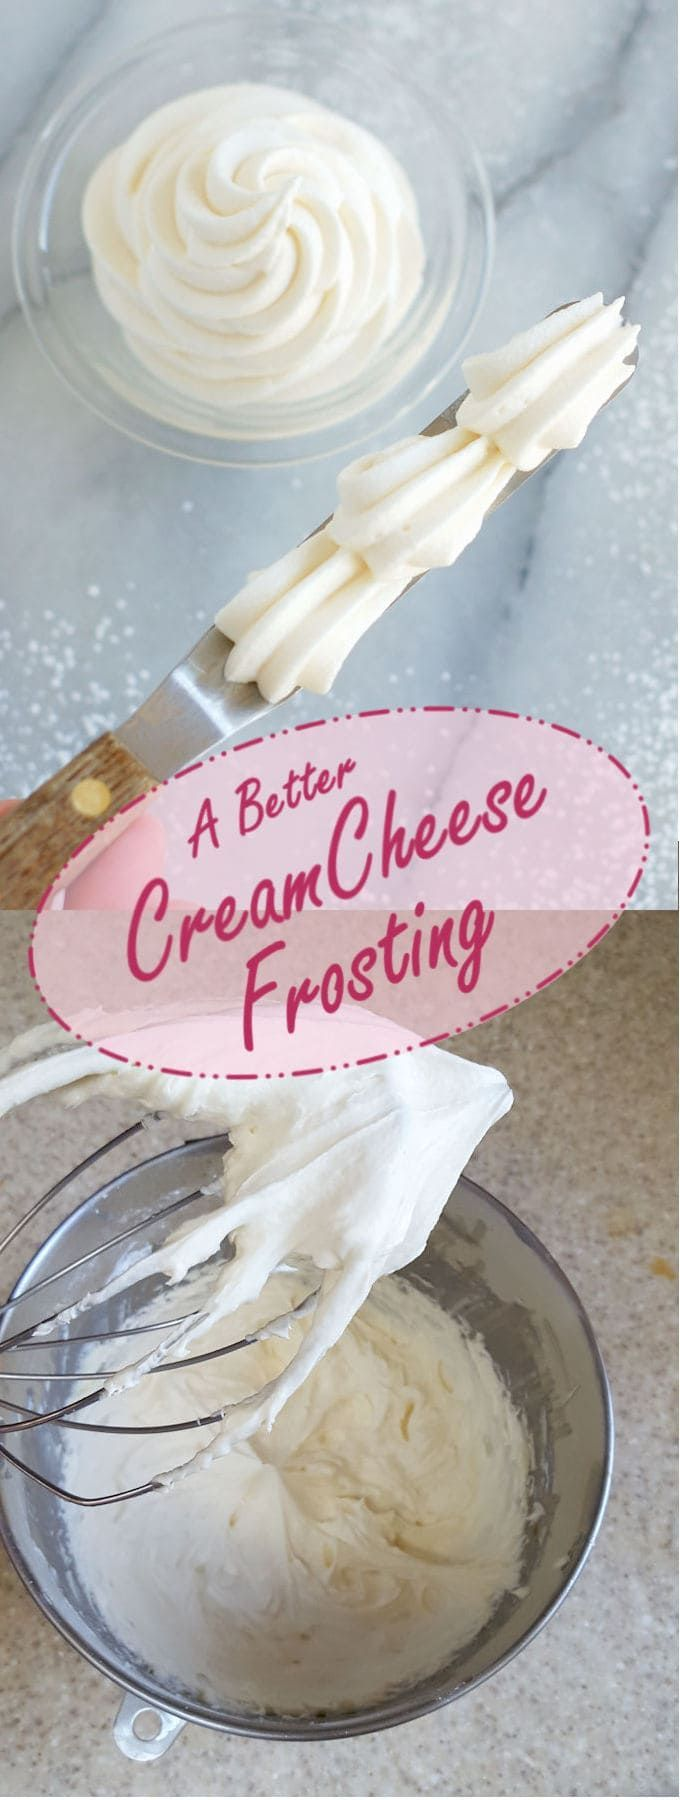 Cheese Frosting - Cream Cheese Icing I've made a few small changes to the typical Cream Cheese Frosting recipe for an icing that's easy to make and has great texture and flavor.I've made a few small changes to the typical Cream Cheese Frosting recipe for an icing that's easy to make and has great texture and flavor.